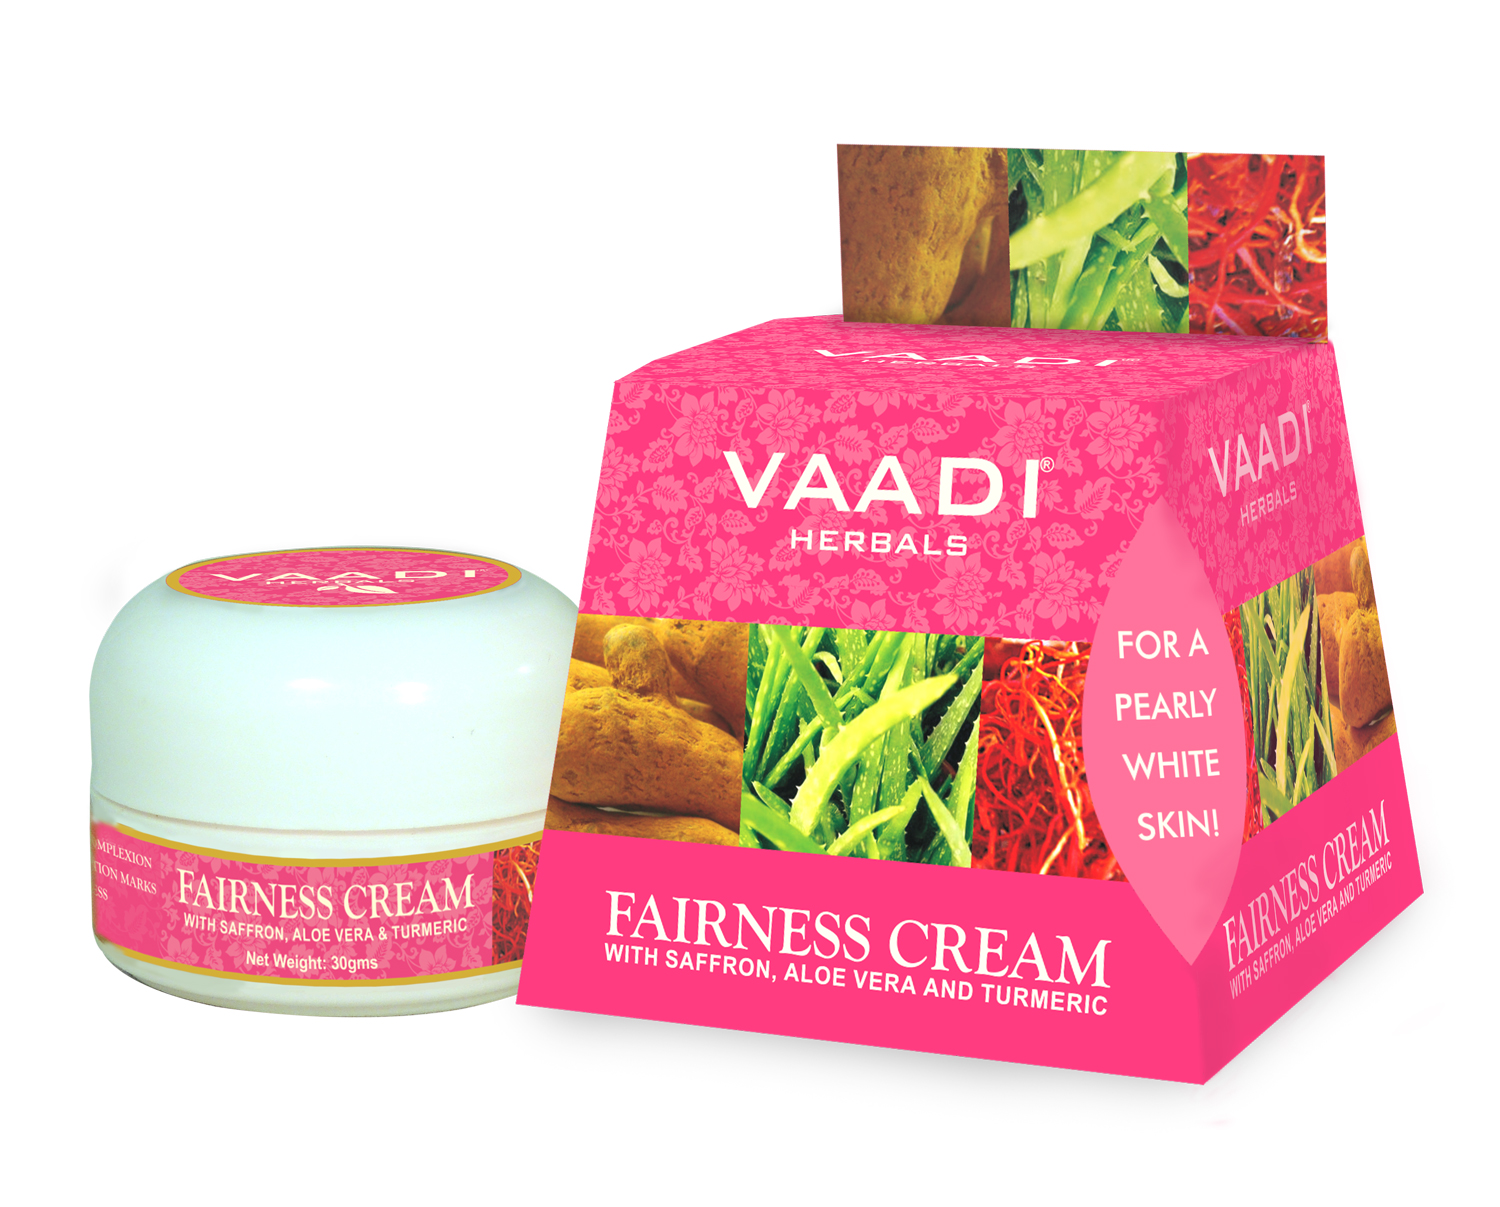 Vaadi Herbals Fairness Cream - Saffron, Aloe Vera & Turmeric Extracts  available at Nykaa for Rs.36